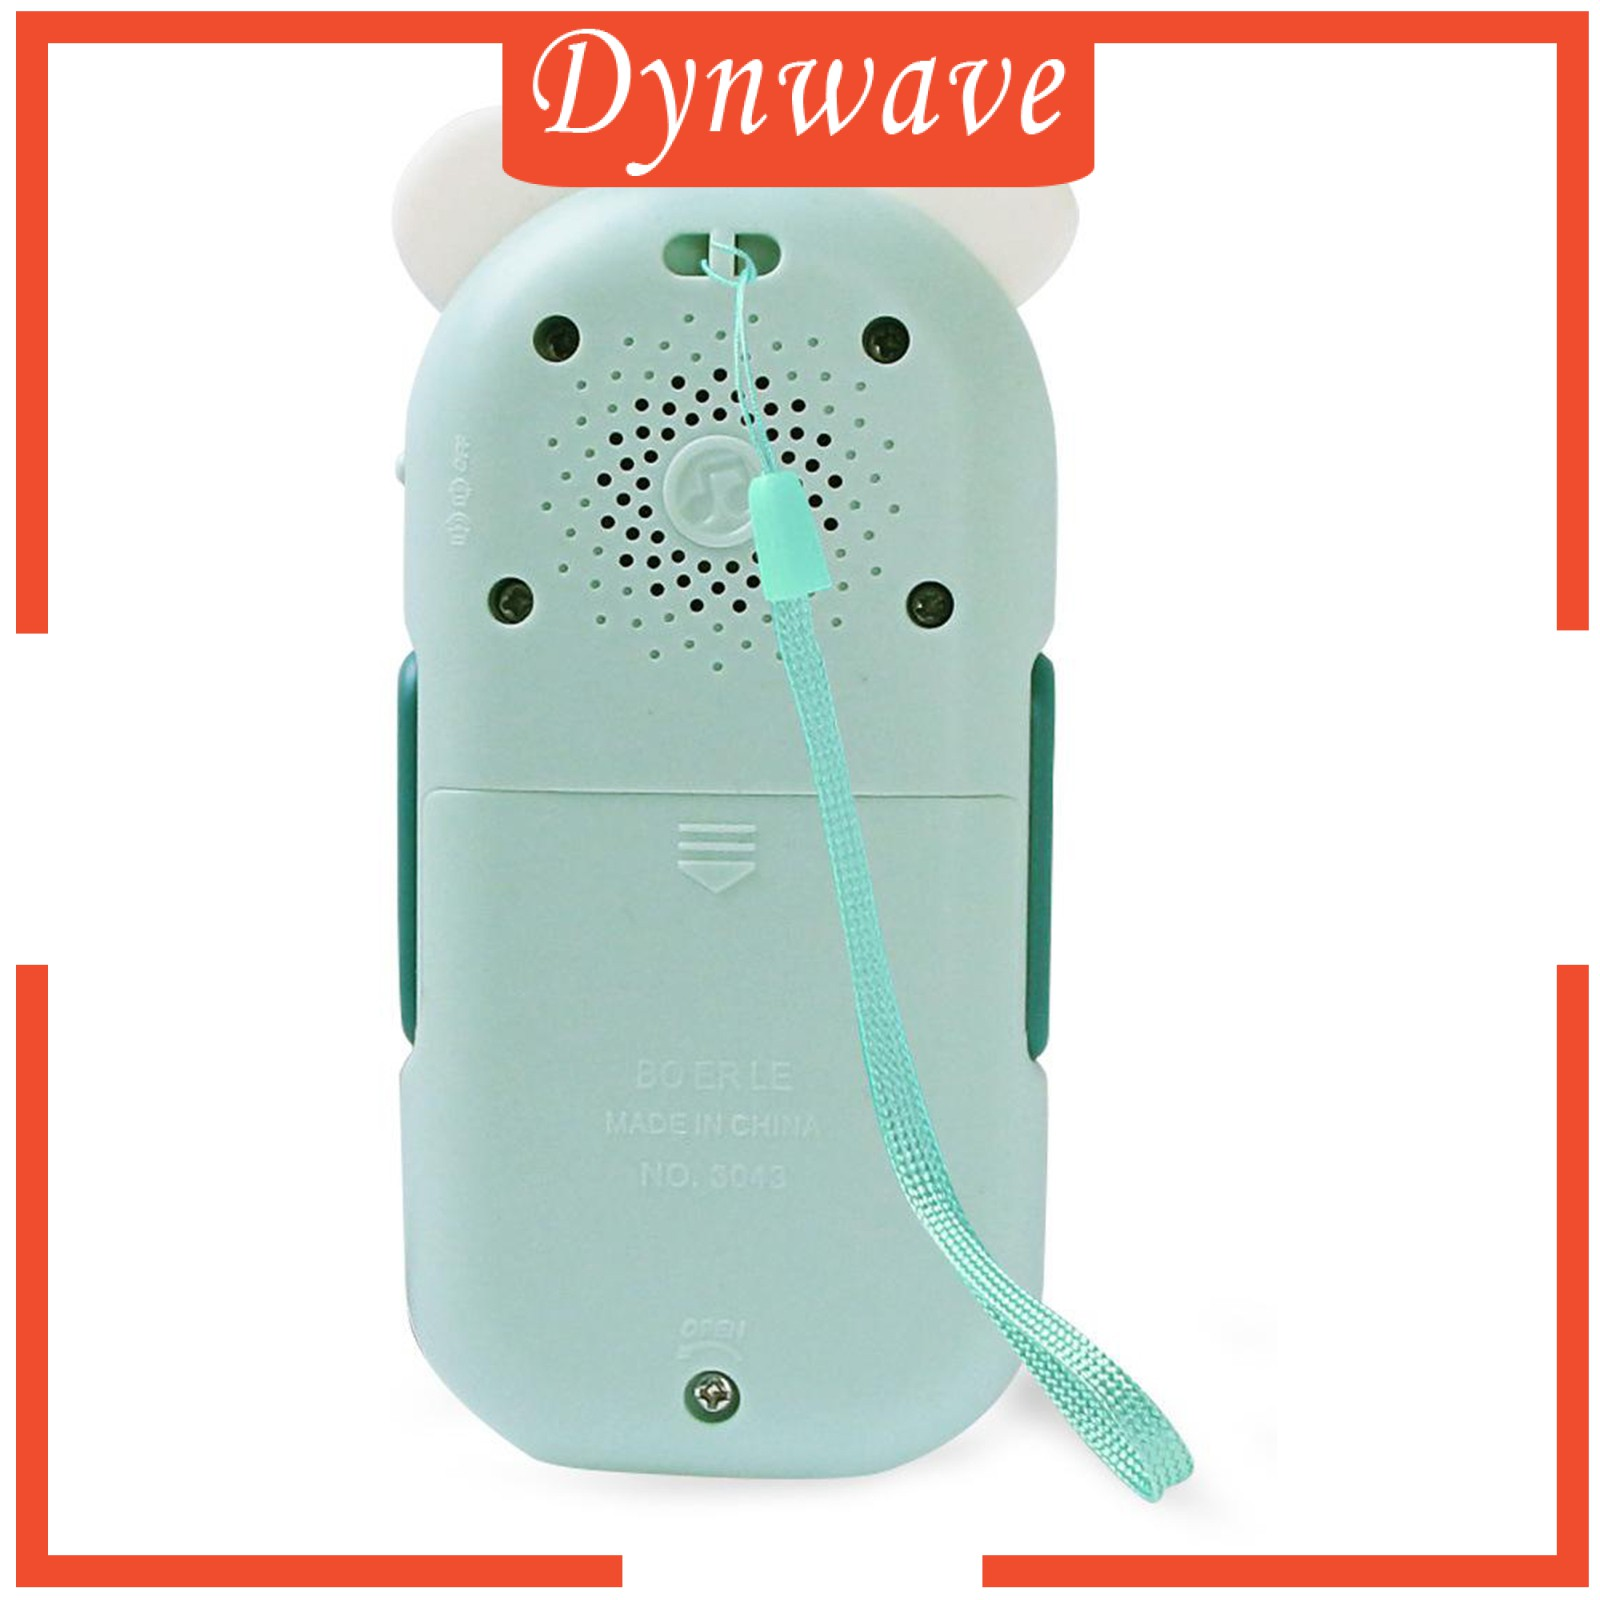 [DYNWAVE] Baby Phone Toy Mobile Telephone Early Educational Learning Machine Kids Gifts